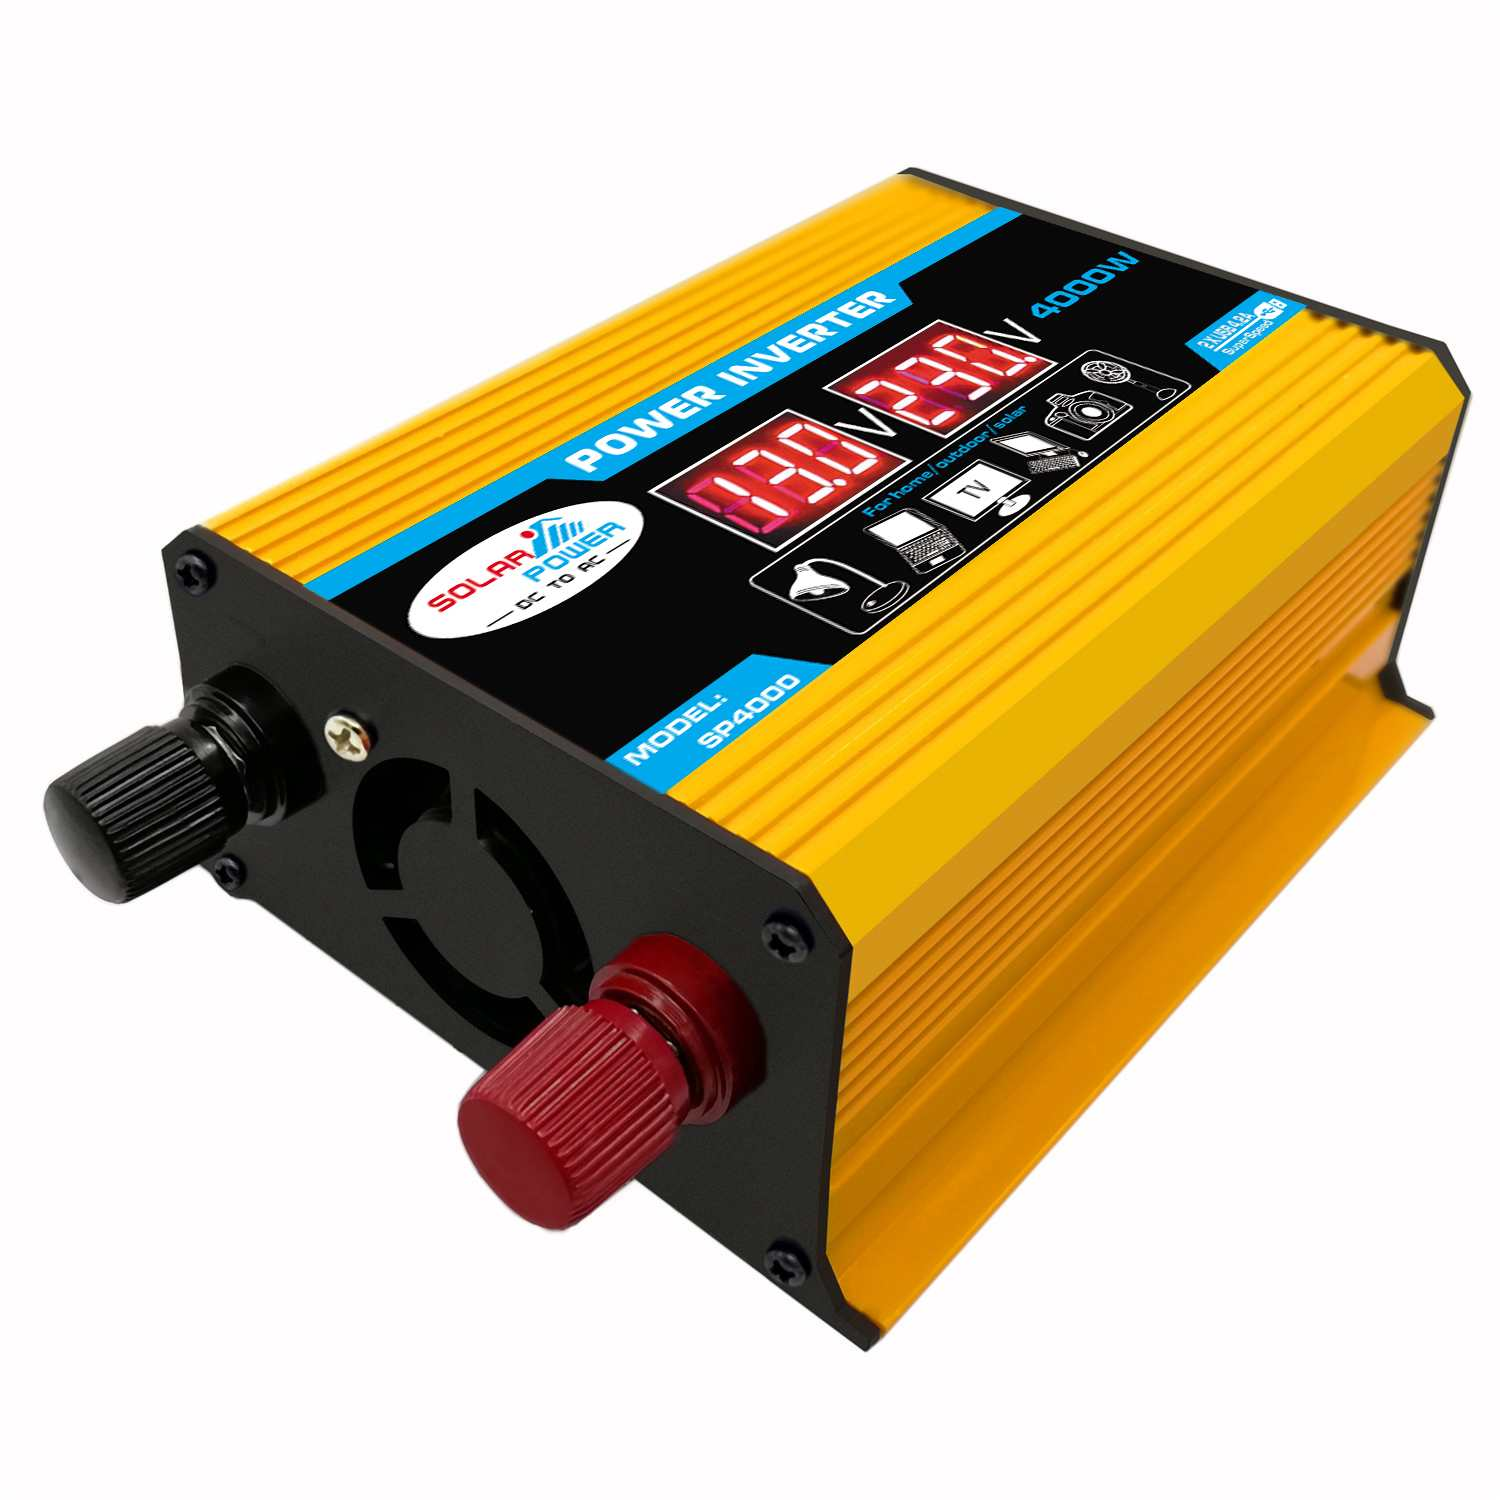 Car <font><b>Inverter</b></font> <font><b>12V</b></font> 220V <font><b>1000W</b></font> Pe ak Power <font><b>Inverter</b></font> Voltage Convertor Transformer <font><b>12V</b></font> To 110V/220V Inversor + LCD Display image